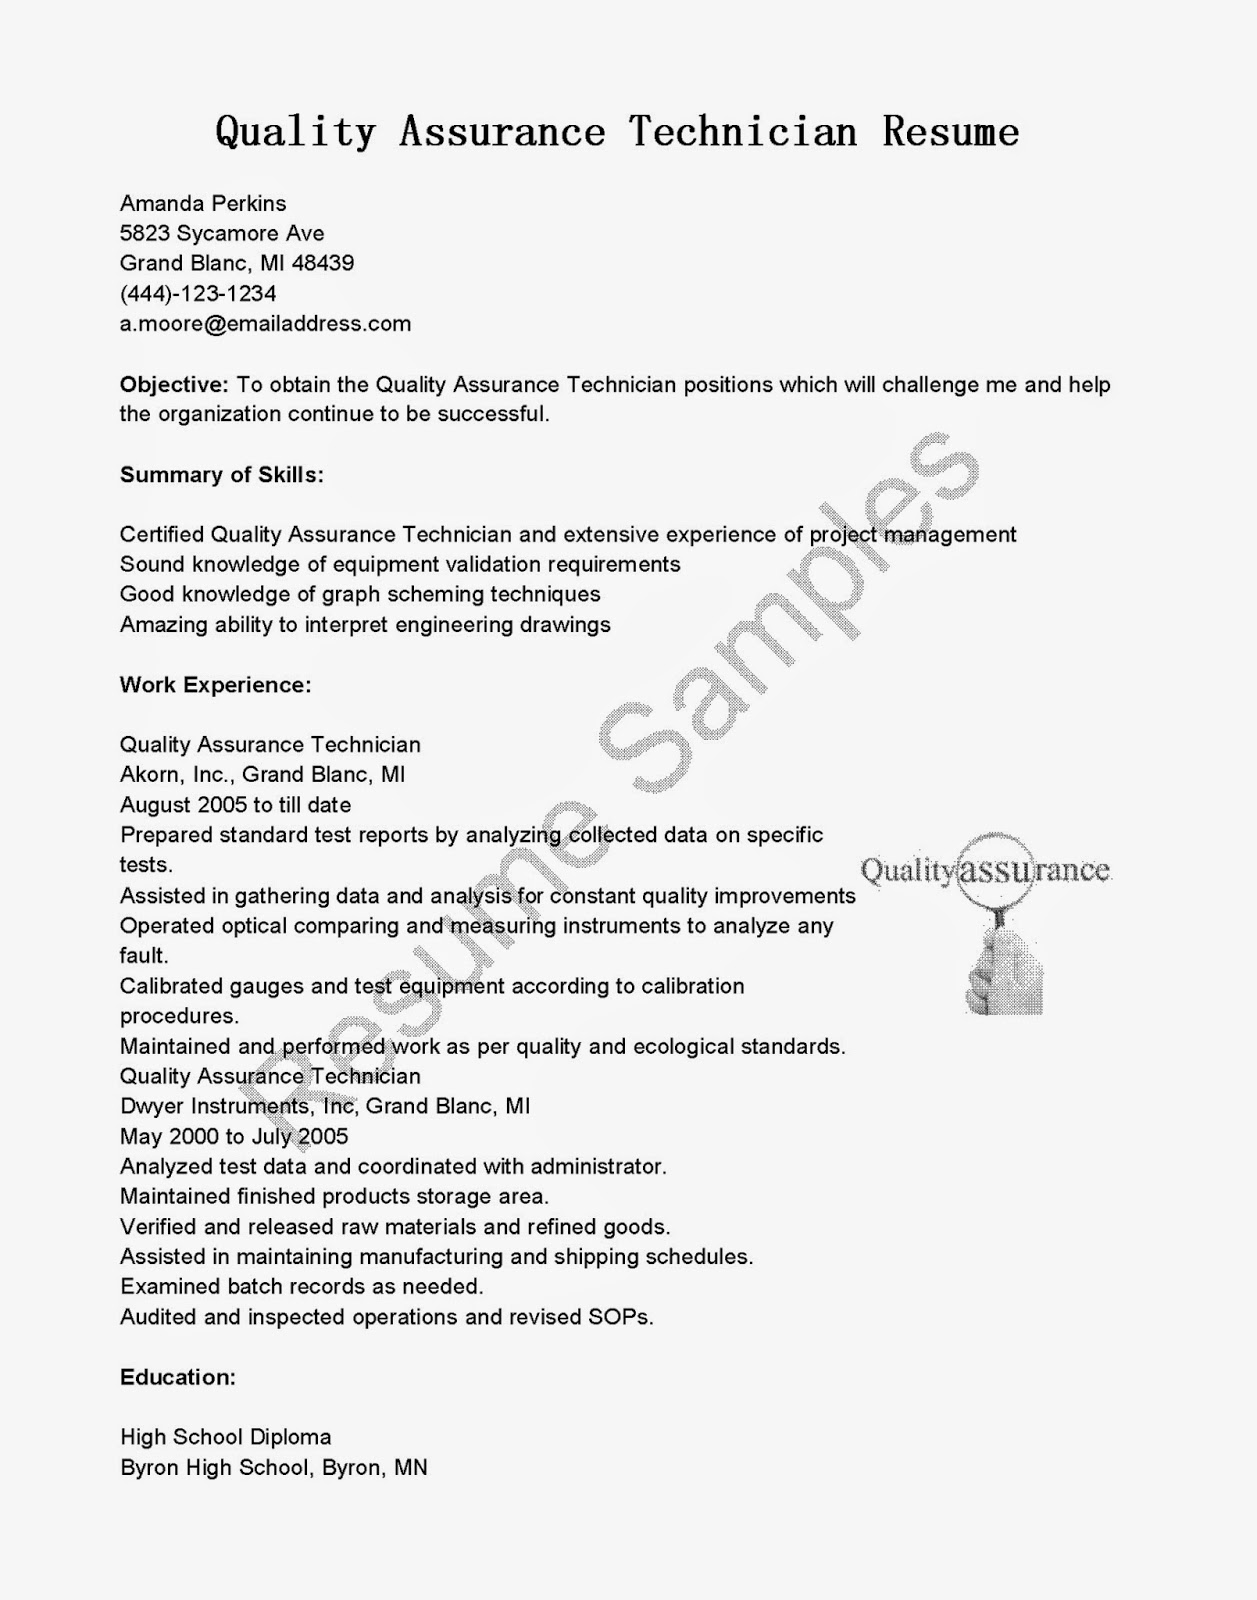 control room engineer resume cover letter software quality assurance resume samples writing resume target cover letter software quality assurance resume samples writing resume target